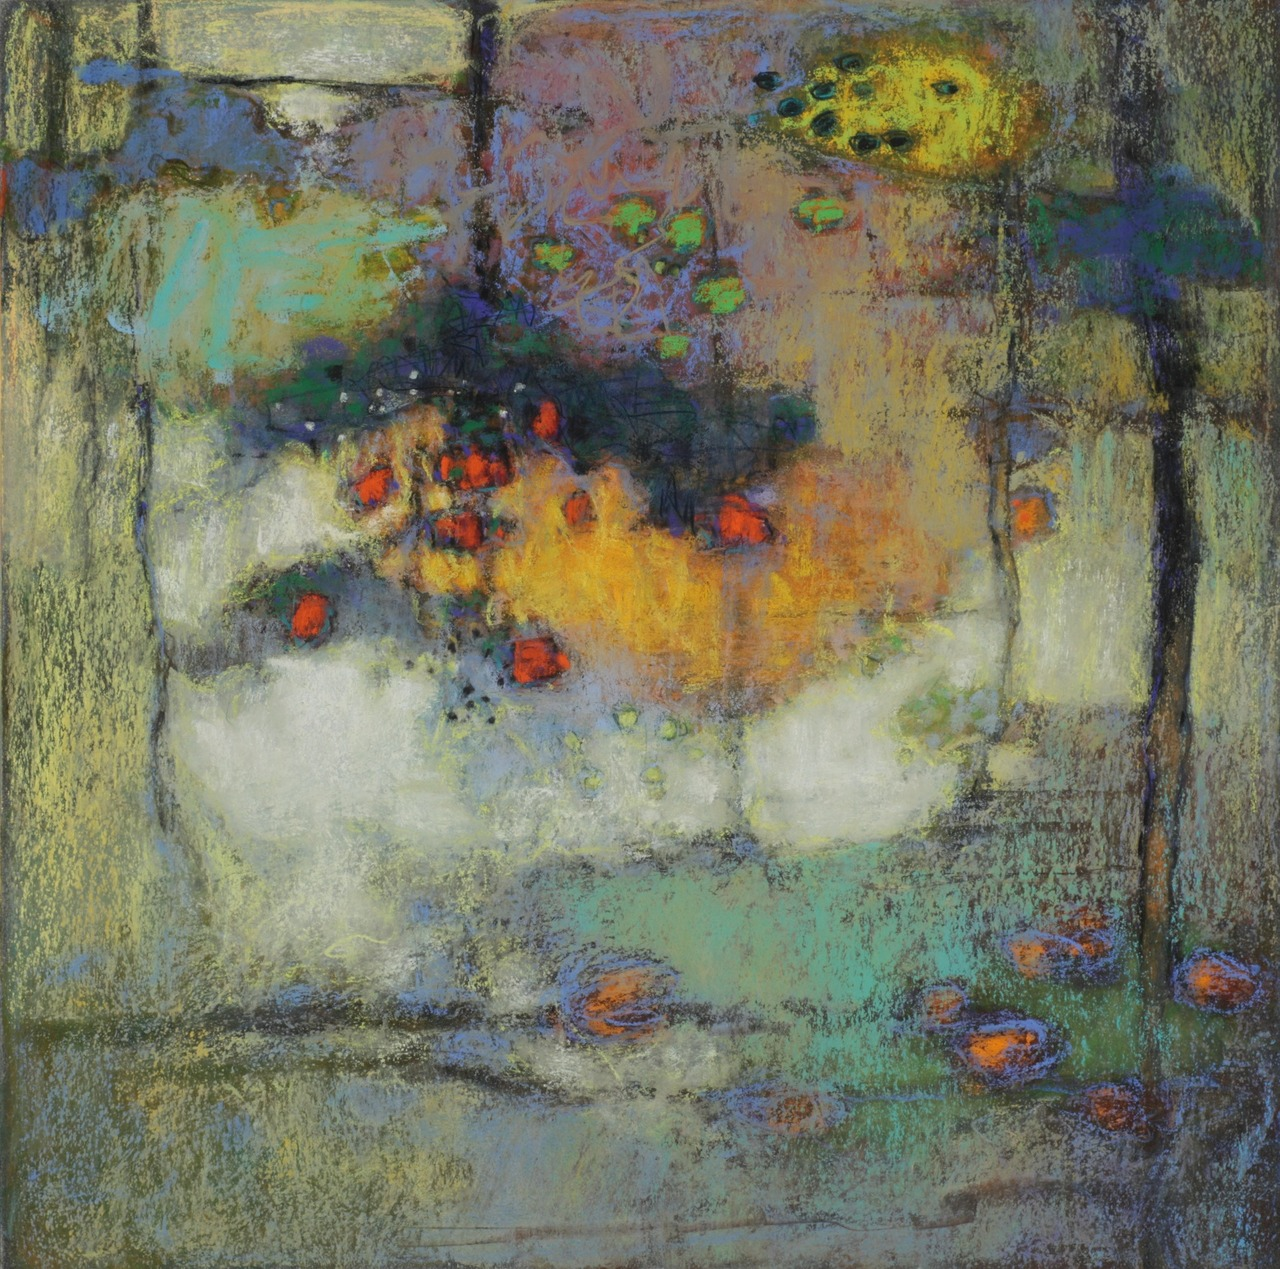 104-12 | pastel on paper | 14 x 14"